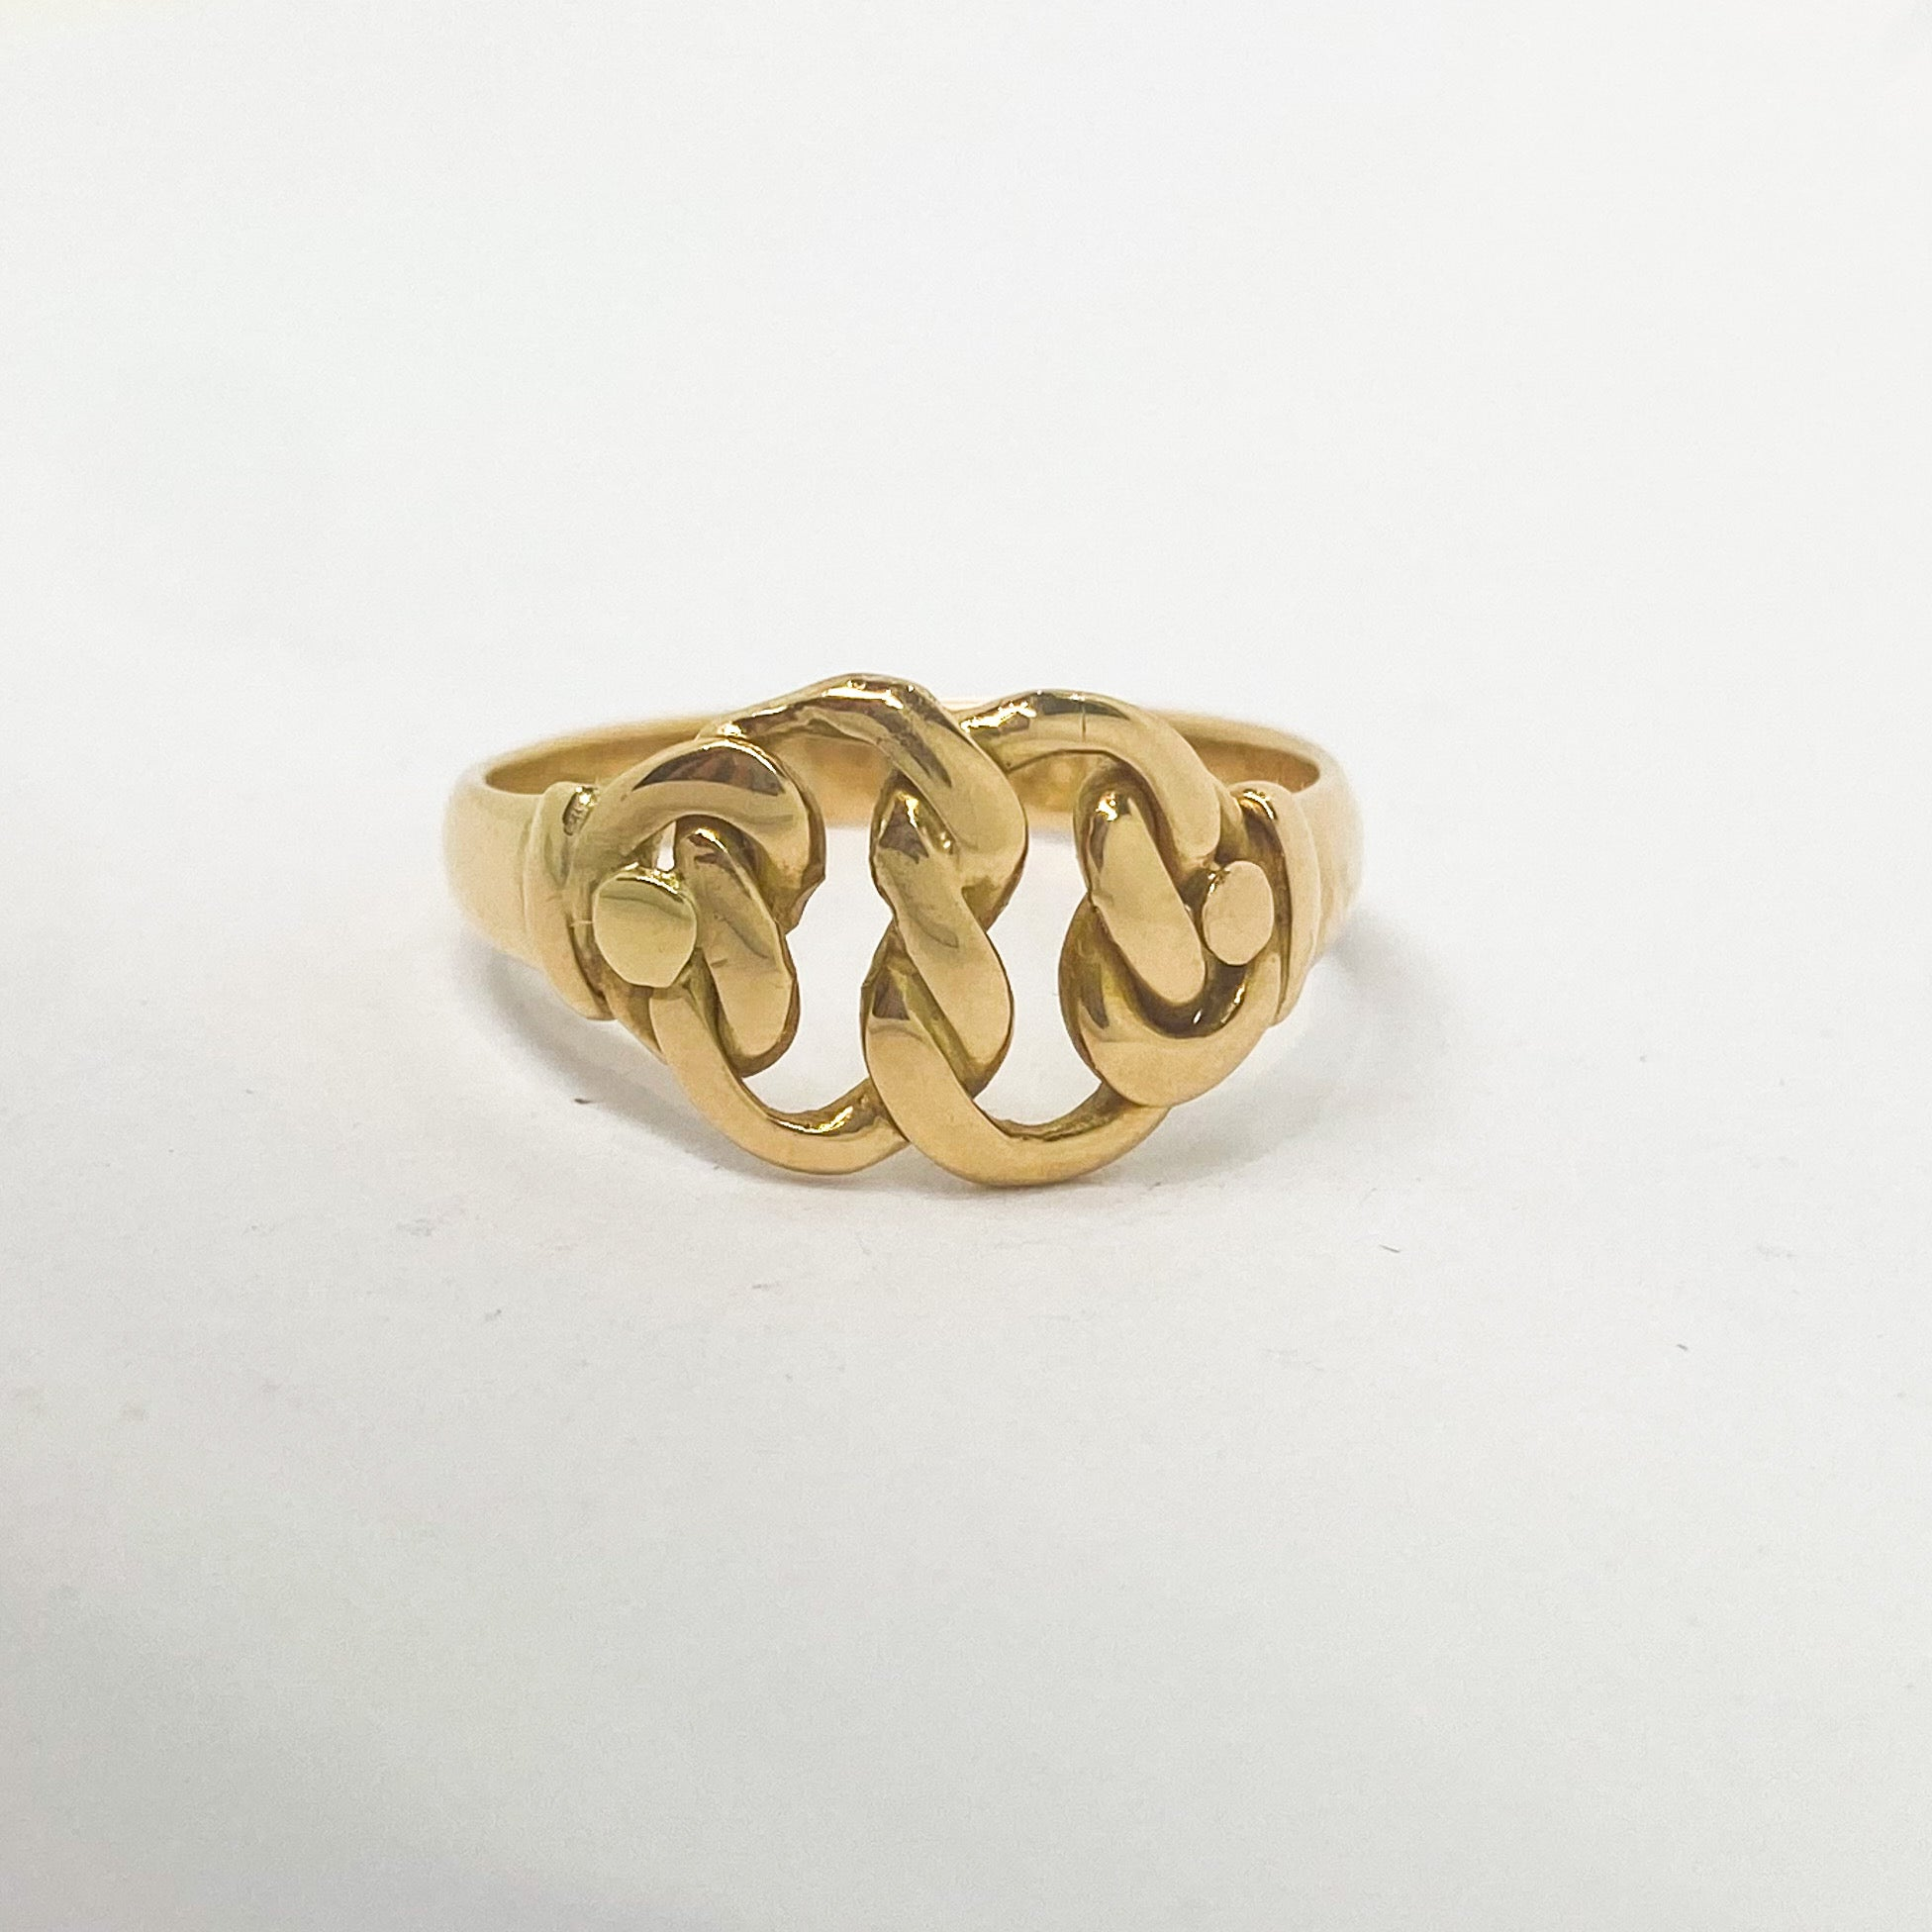 Antique 18ct Gold Reef Knot Ring, c.1910